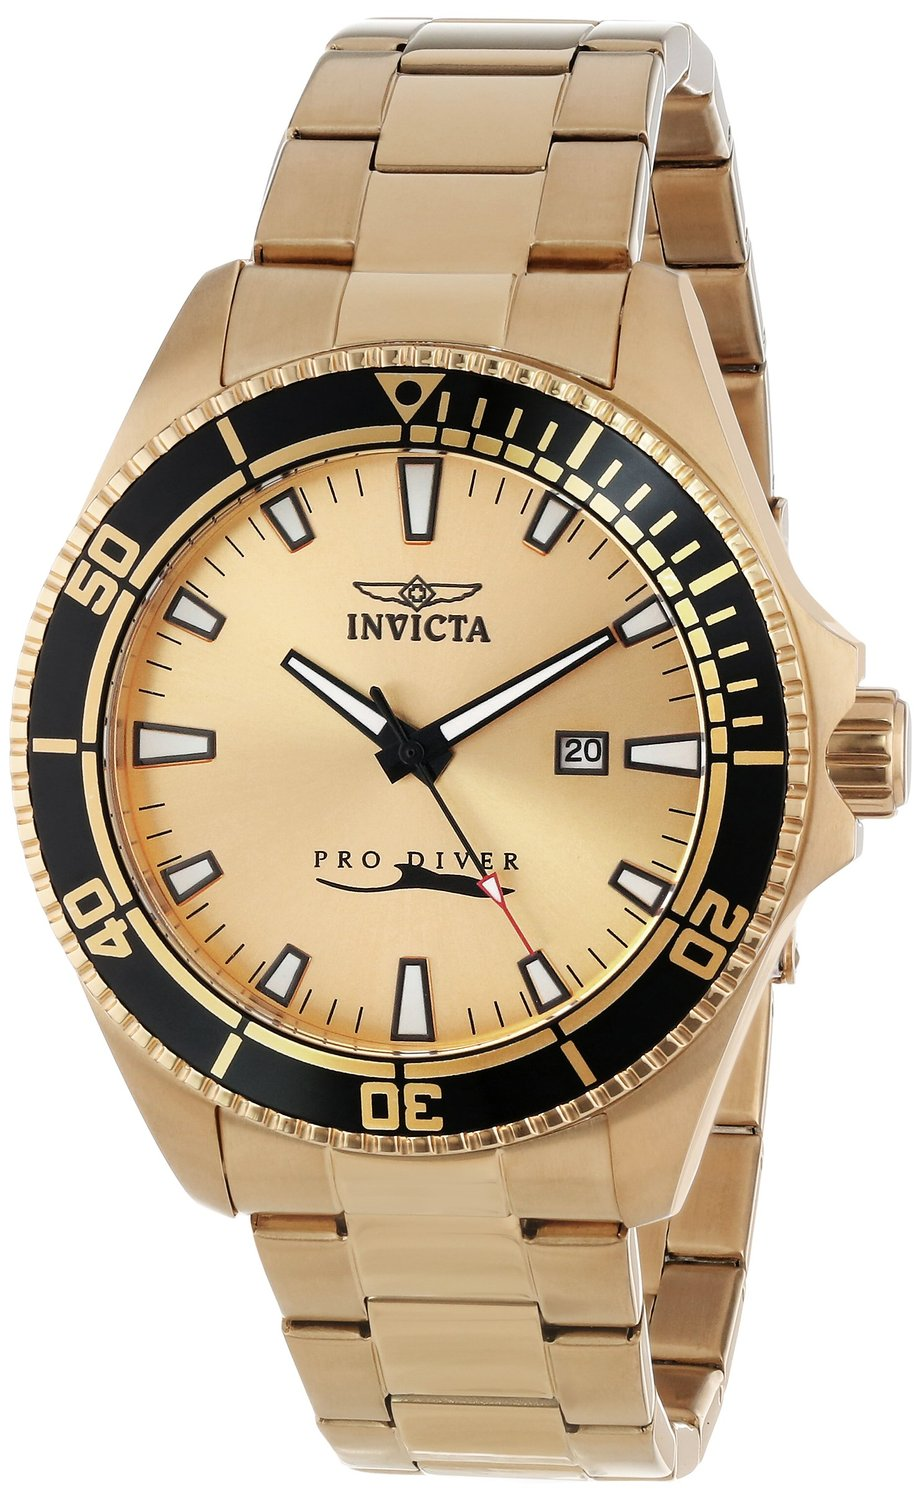 Invicta Men's 15186SYB Pro Diver 18k Yellow Gold Ion-Plated Stainless Steel Watch with Impact Case